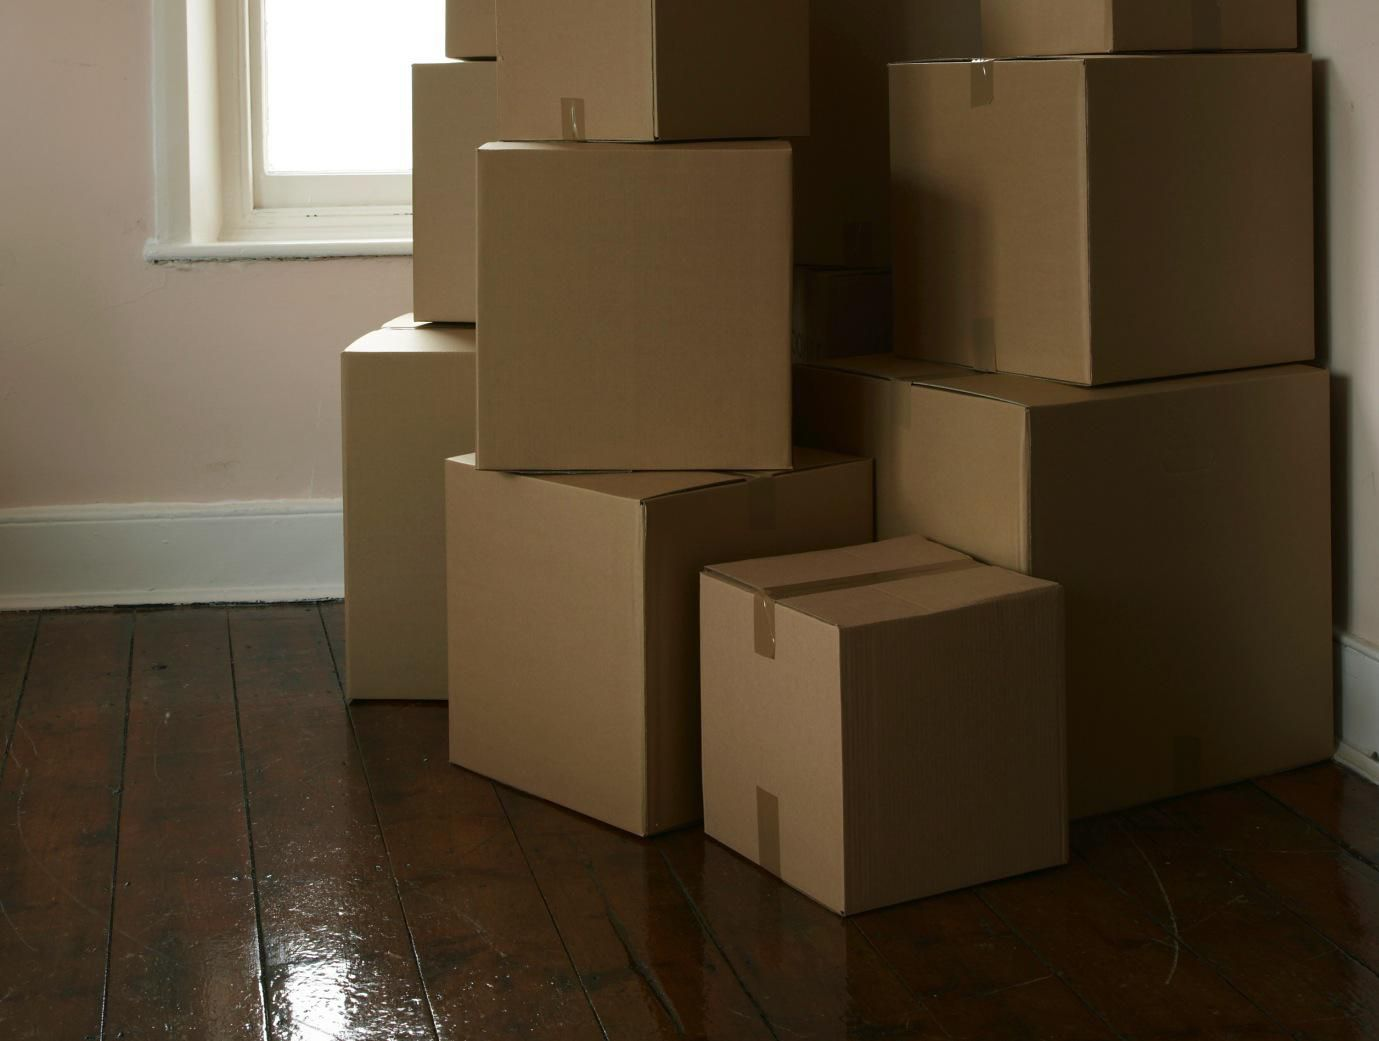 Packing Boxes - Moving Tips